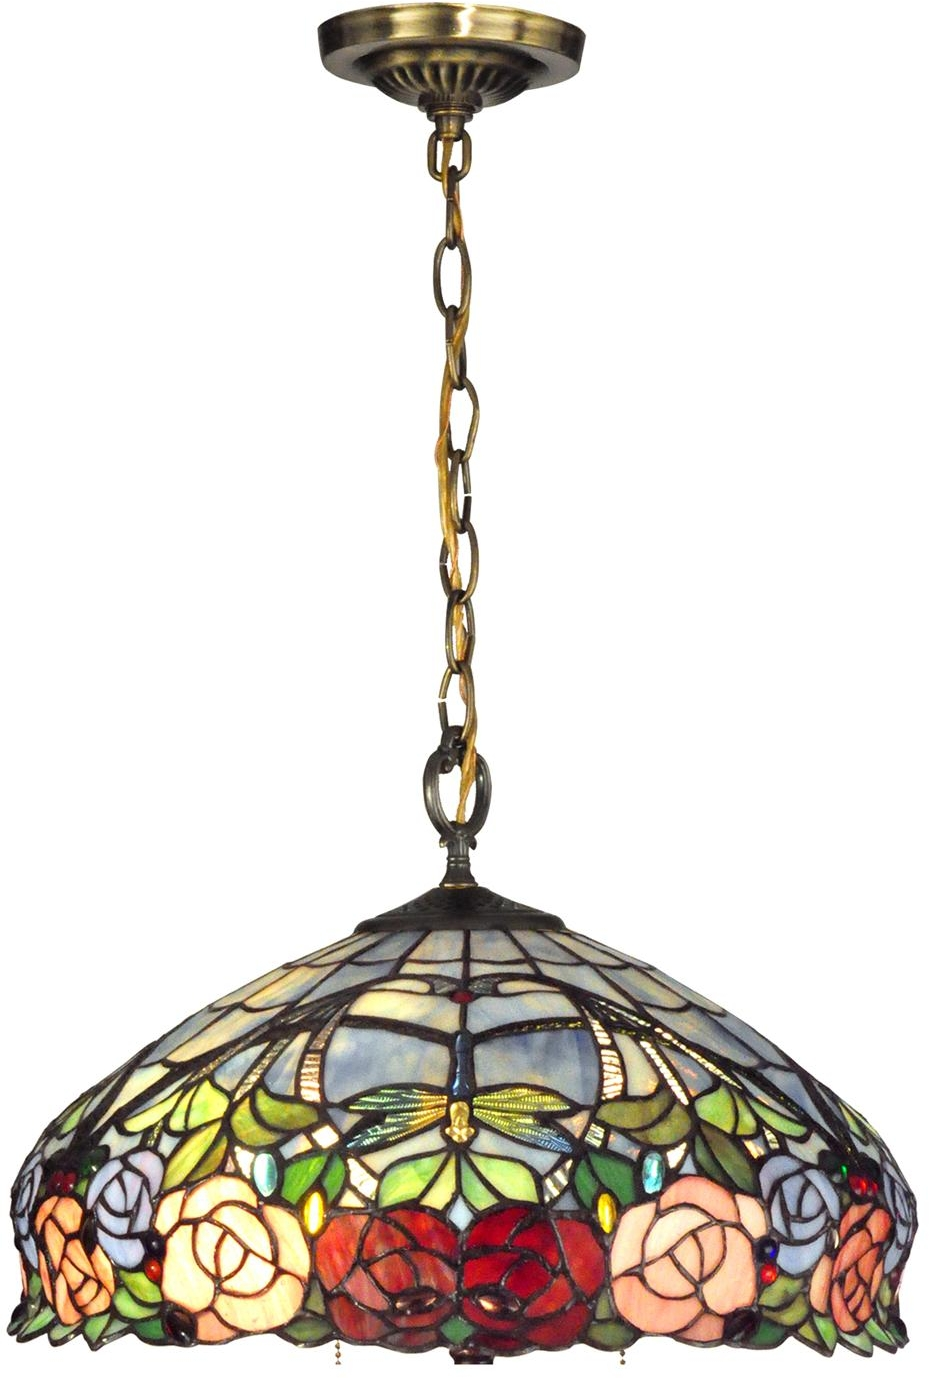 Tiffany Hanging Light Fixtures Fixture DALE TIFFANY Reproduction Hanging 1 Light Antique Brass Metal